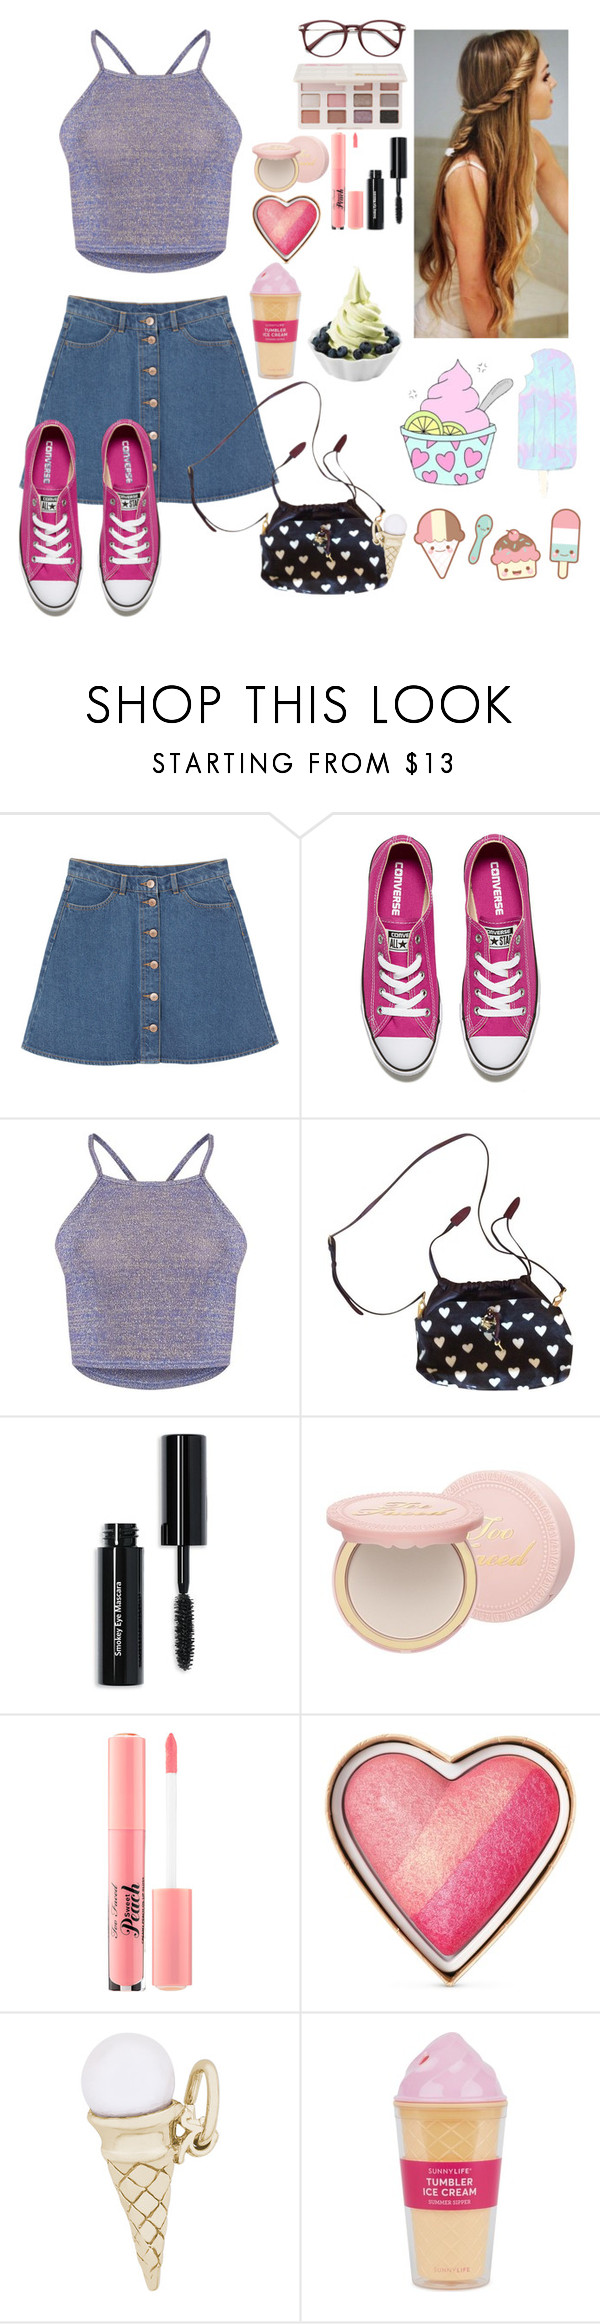 """I love Froyo oh,oh oh-oh it's so yolo oh,oh oh-oh oh-oh"" by aby-ocampo ❤ liked on Polyvore featuring Monki, Converse, Burberry, Bobbi Brown Cosmetics, Too Faced Cosmetics, Disney, Rembrandt Charms and Sunnylife"